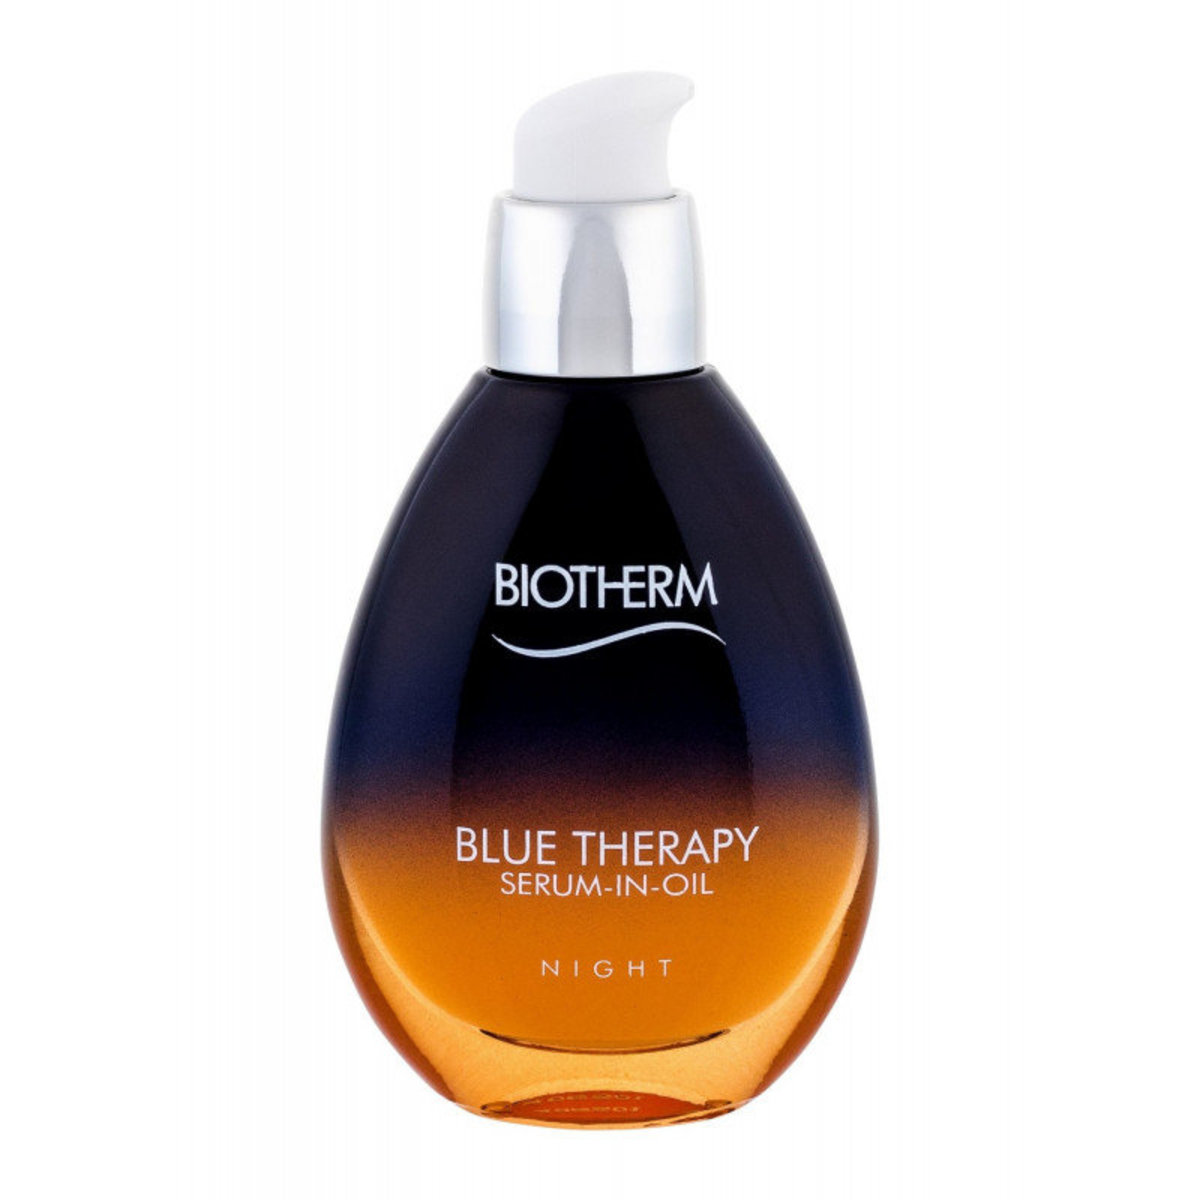 BLUE THERAPY SERUM-IN-OIL 50ml (Parallel Import)